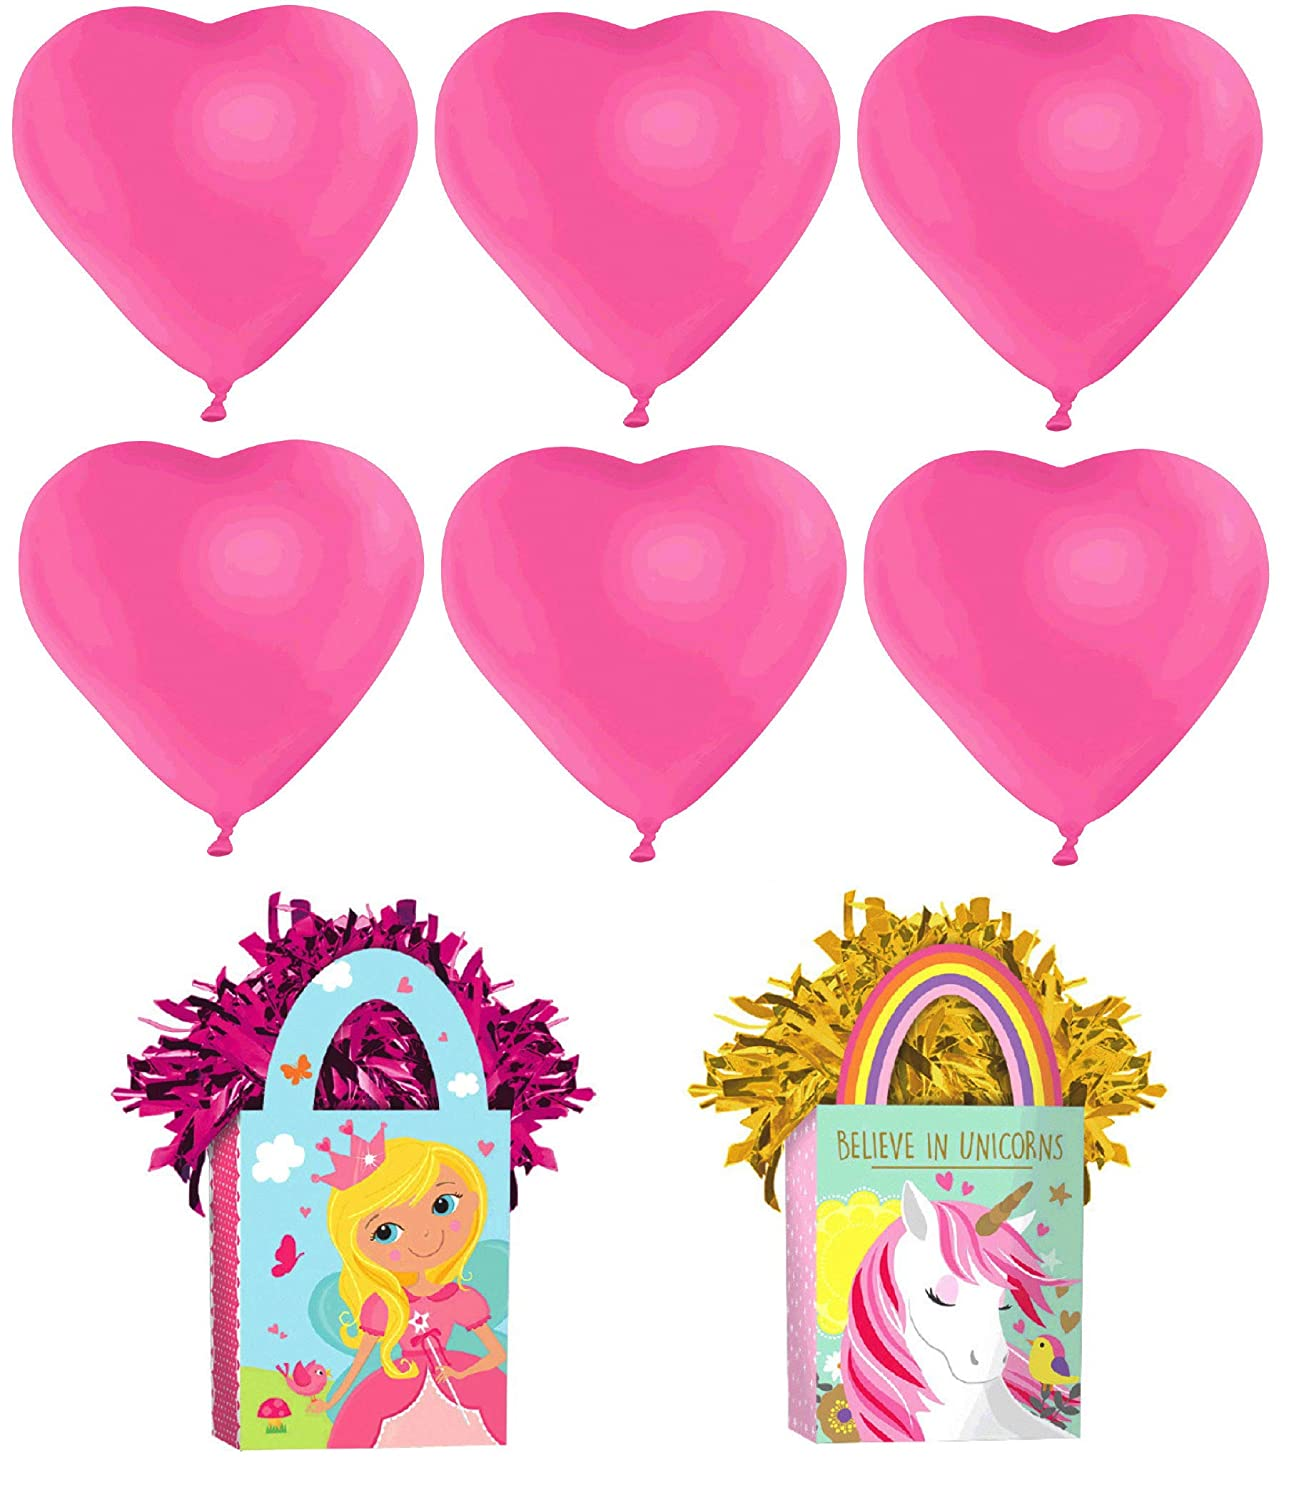 Amscan Heart Shaped Balloons /& Magical Unicorn and Princess Party Mini Tote Balloon Weight Bags